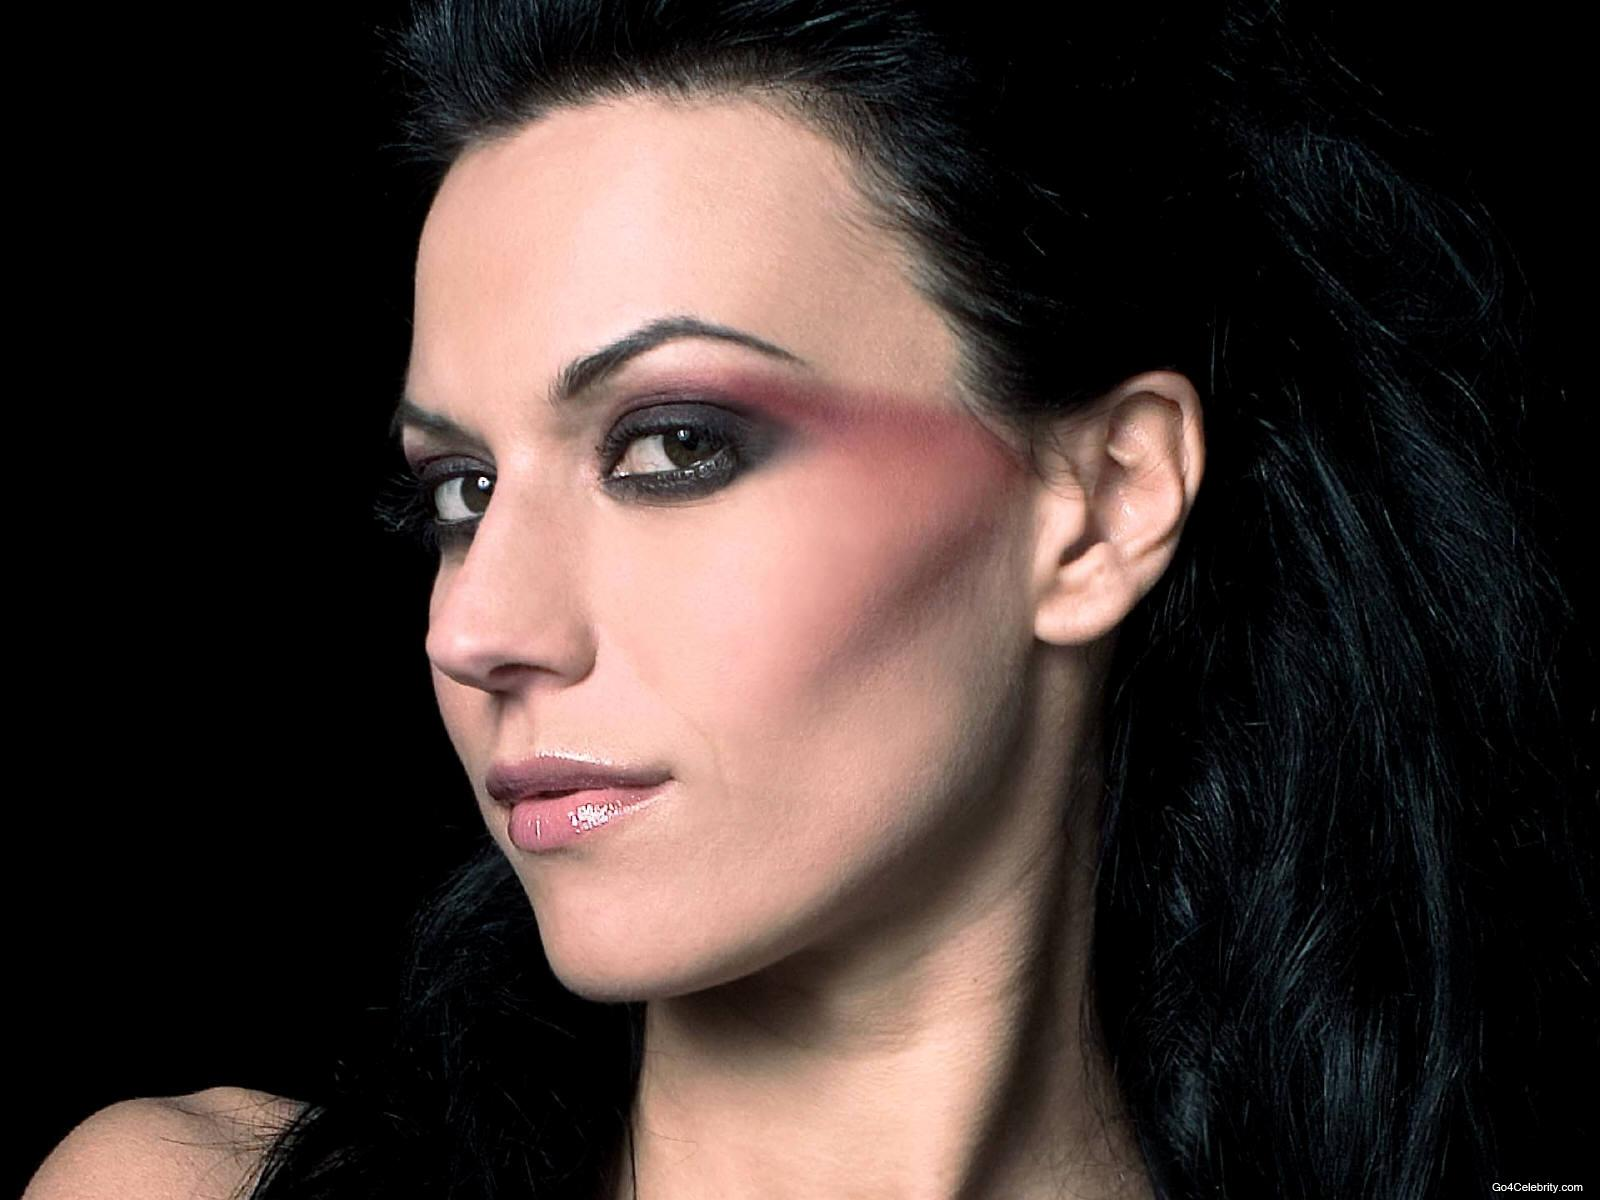 Cool Girl With Guitar Wallpaper 3 Cristina Scabbia Hd Wallpapers Background Images